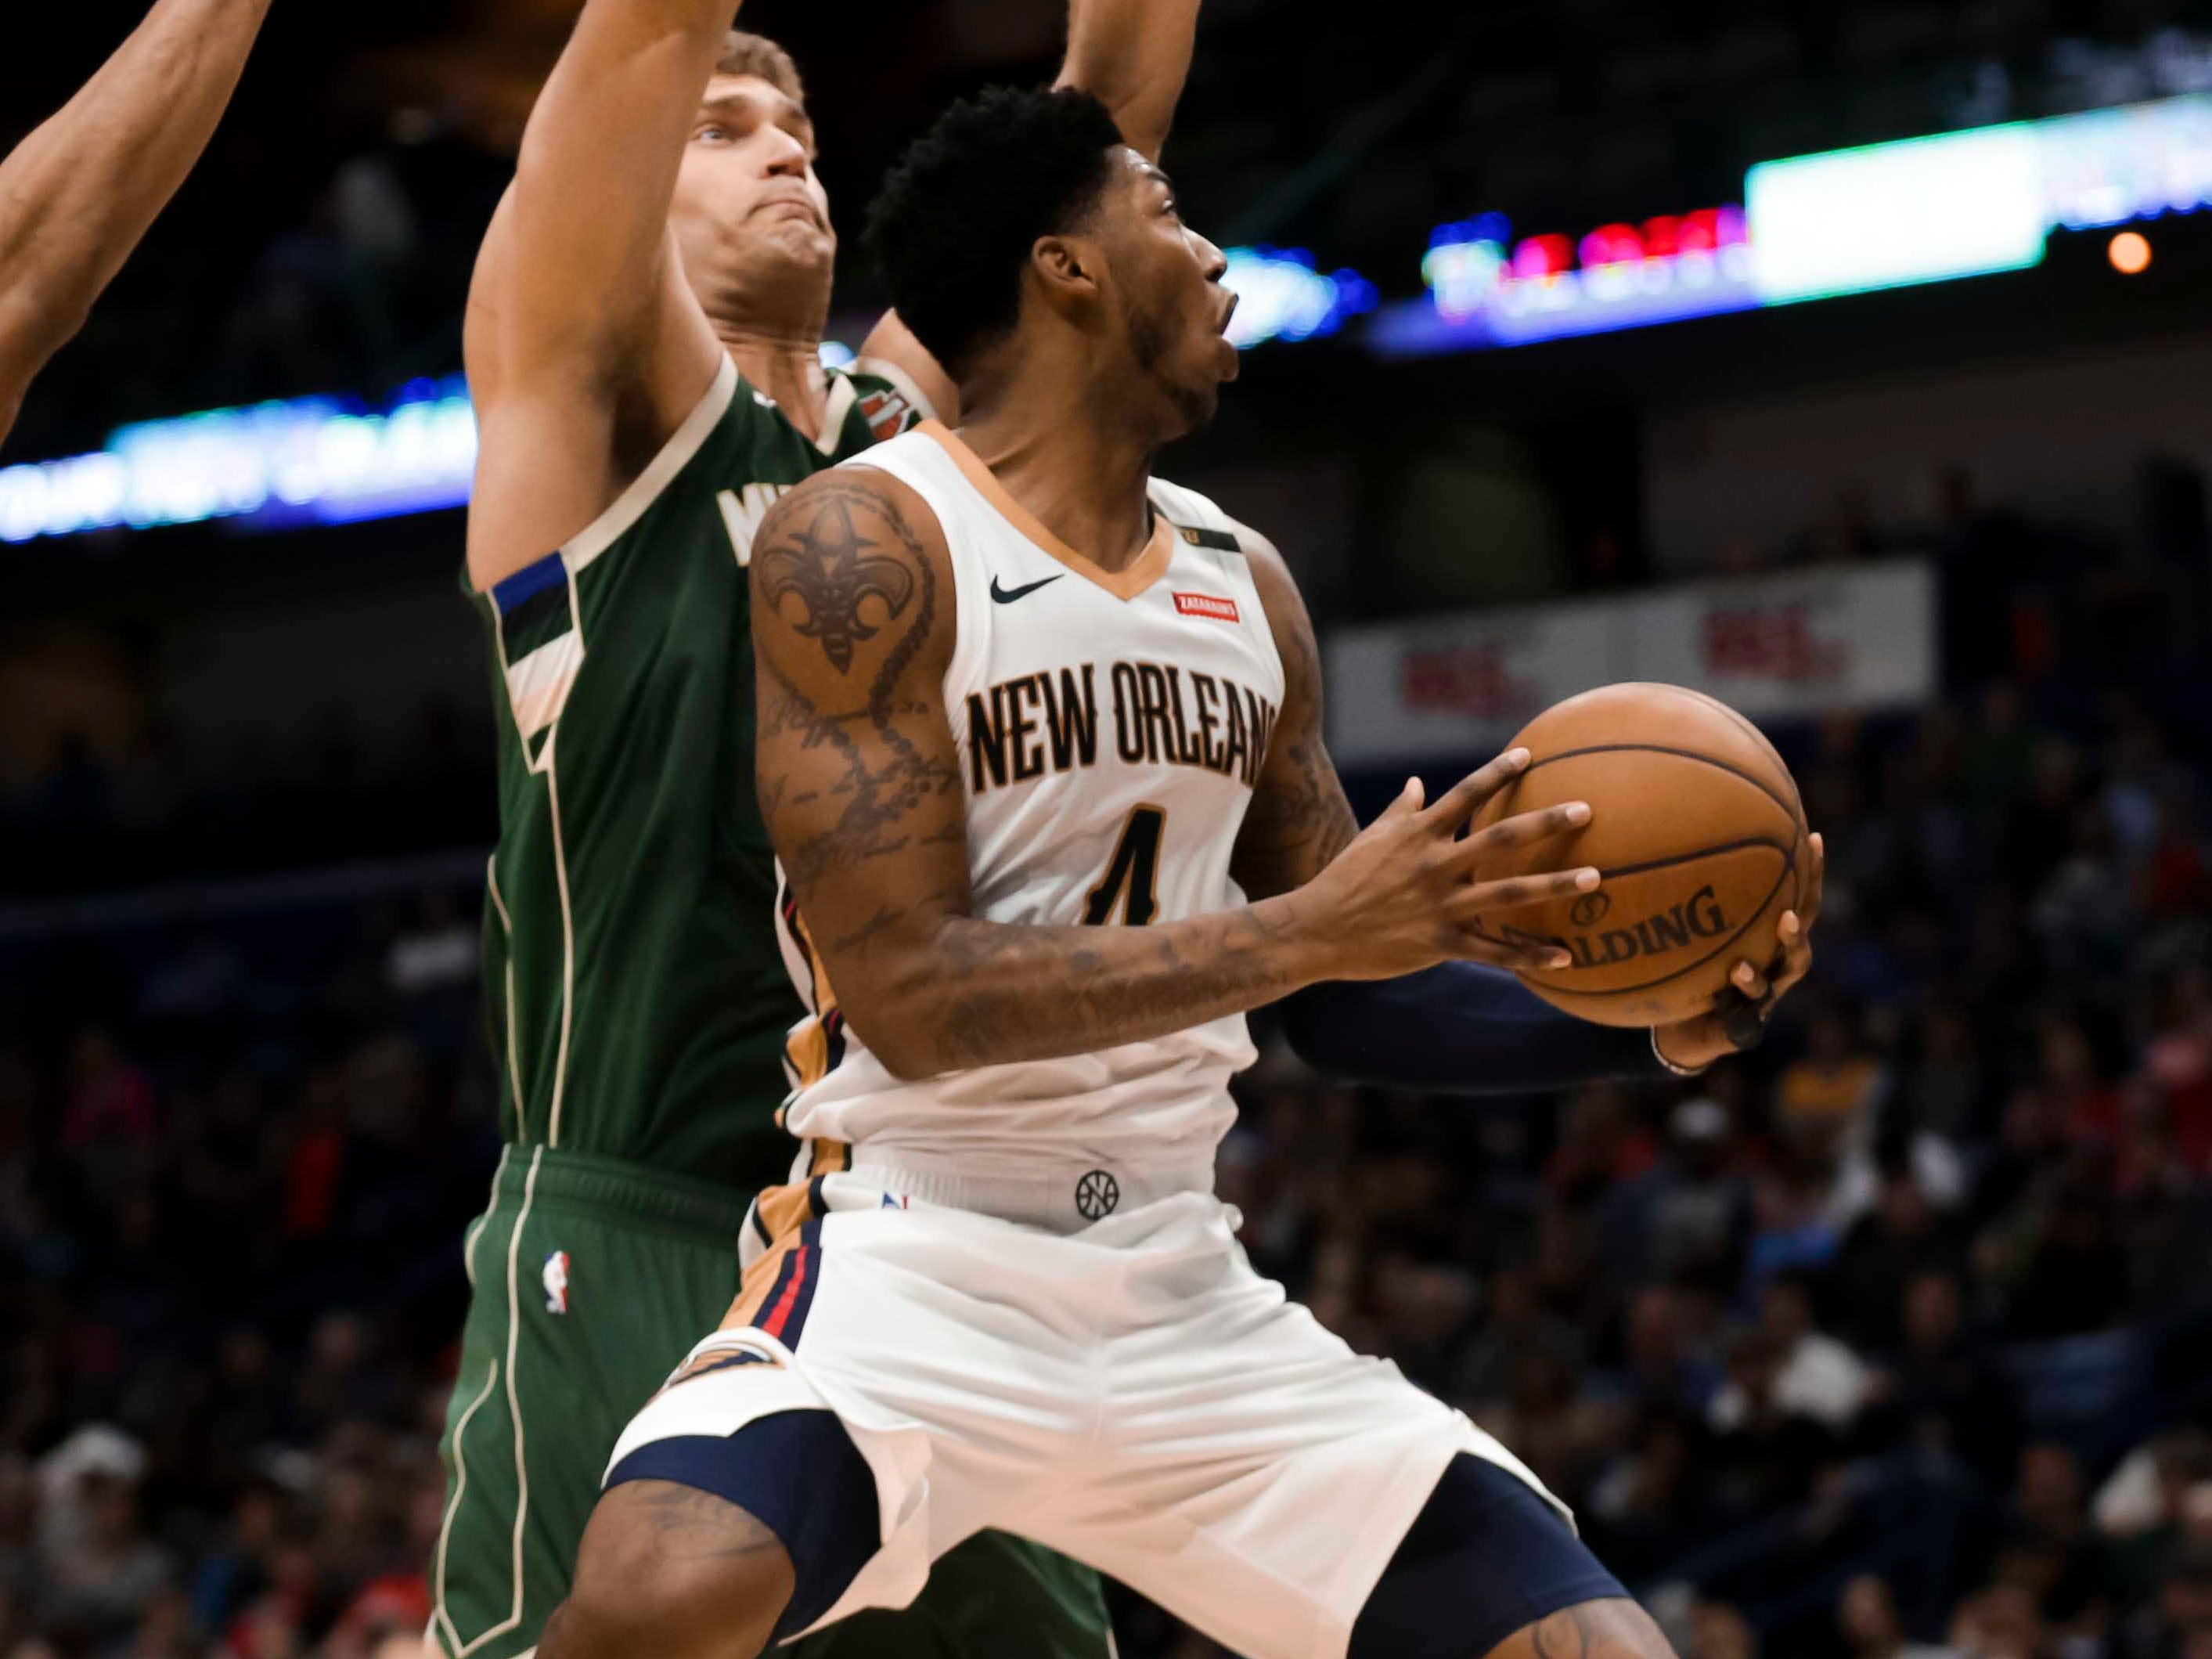 98.Elfrid Payton, Pelicans (March 12): 14 points, 15 assists, 11 rebounds in 130-113 loss to Bucks (third of season).